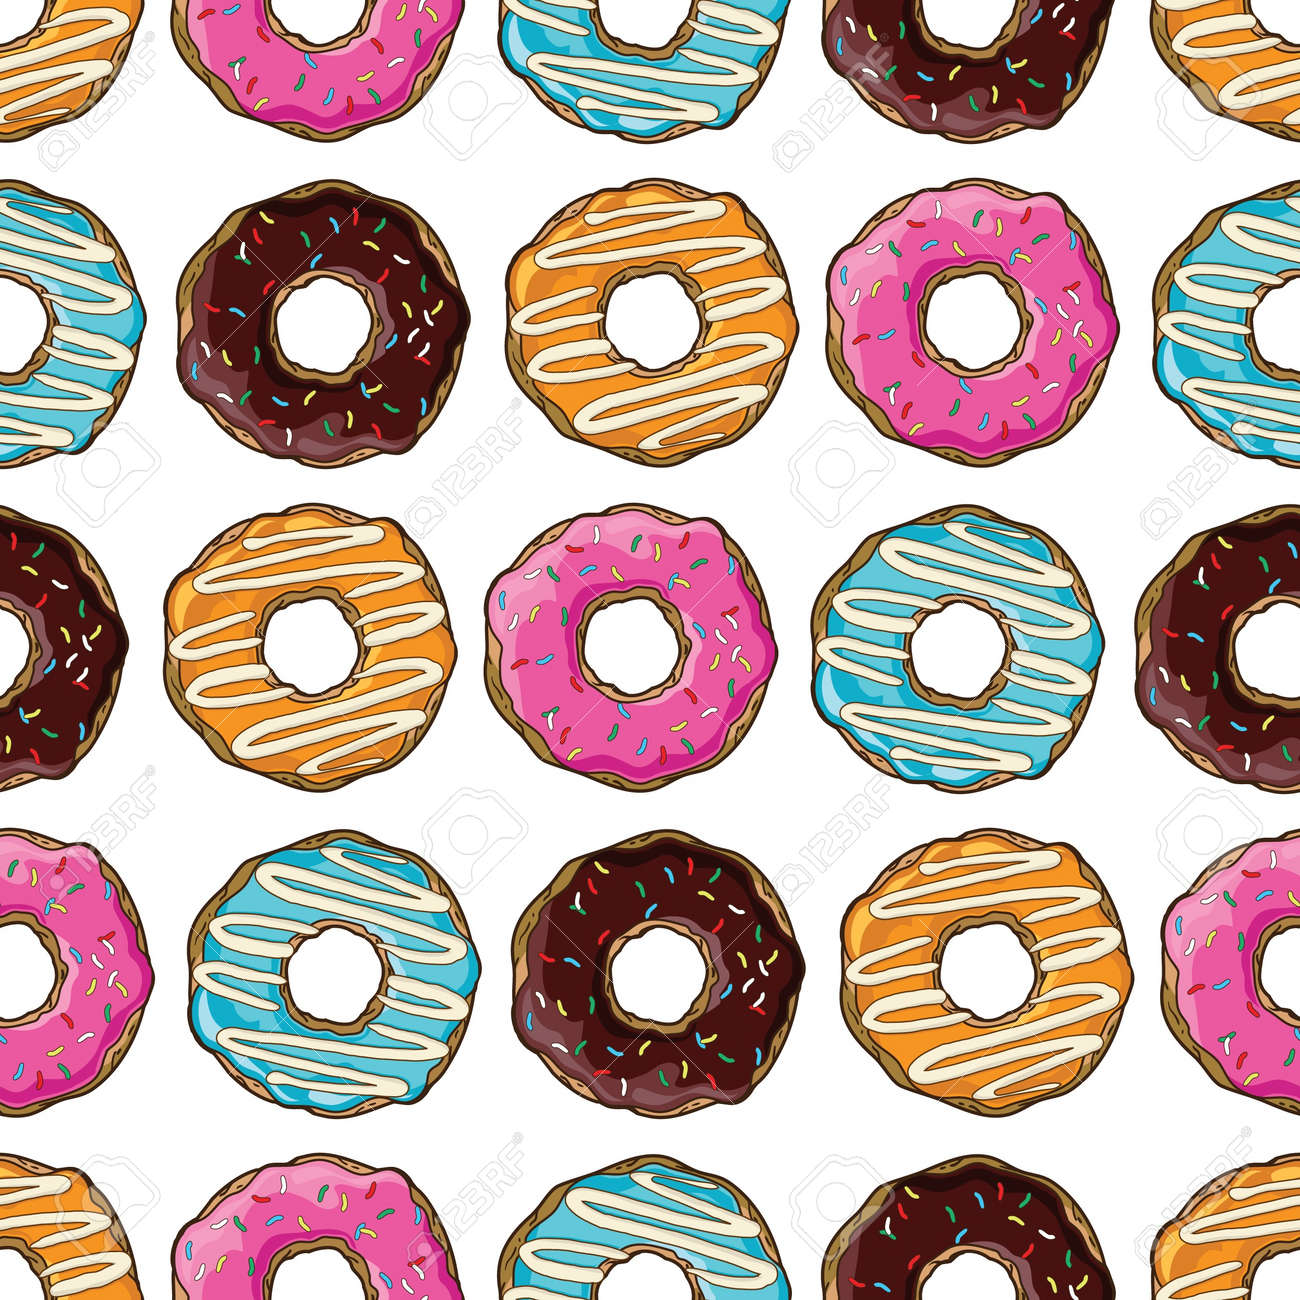 Seamless pattern with donuts - 21523926